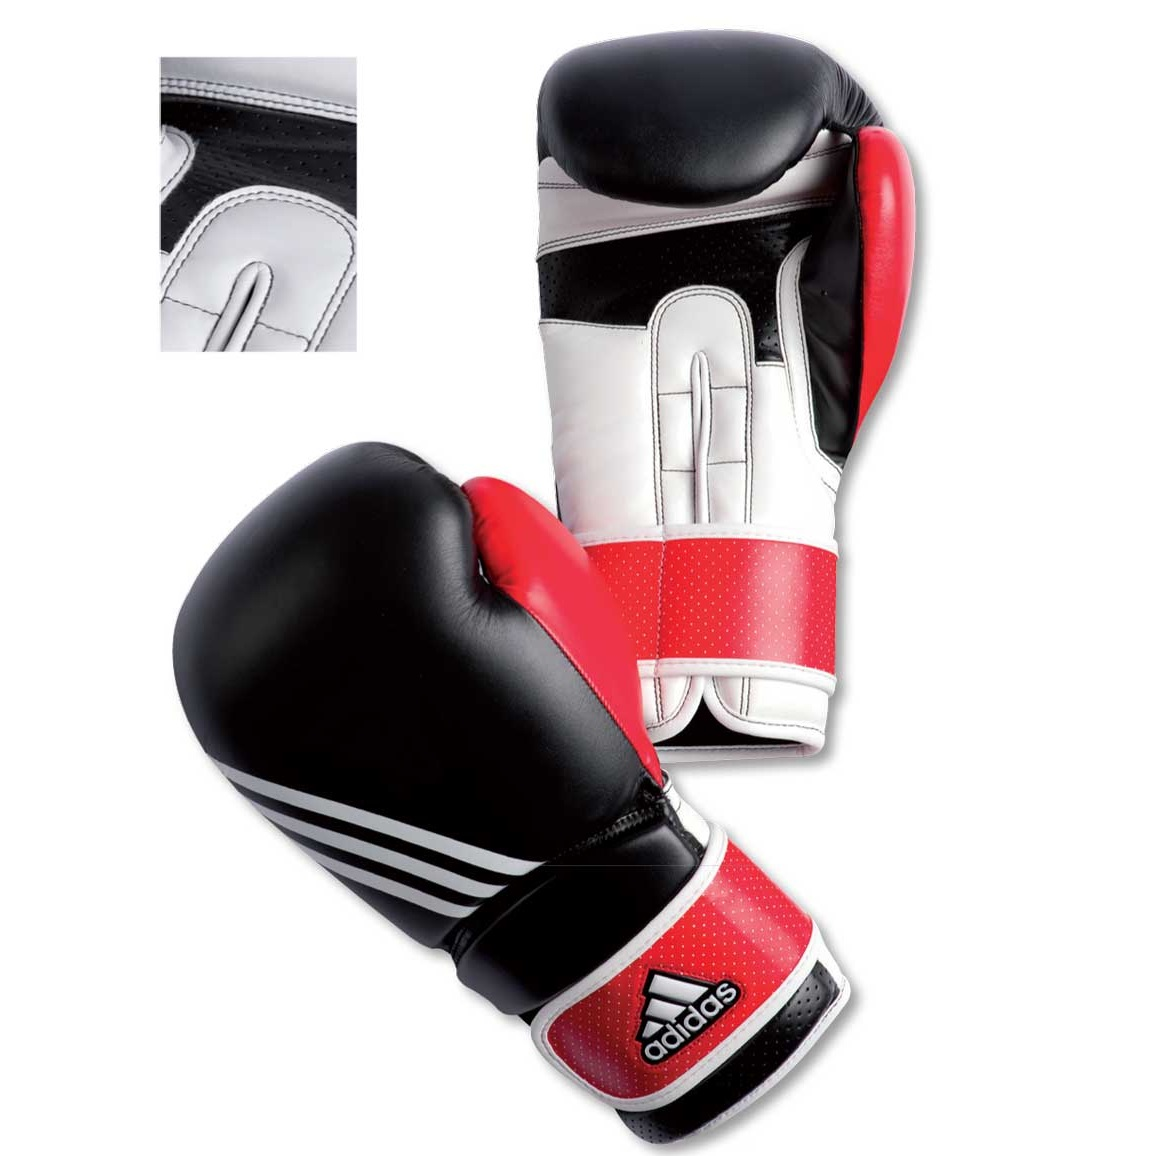 gants de boxe cuir adidas fujisport. Black Bedroom Furniture Sets. Home Design Ideas